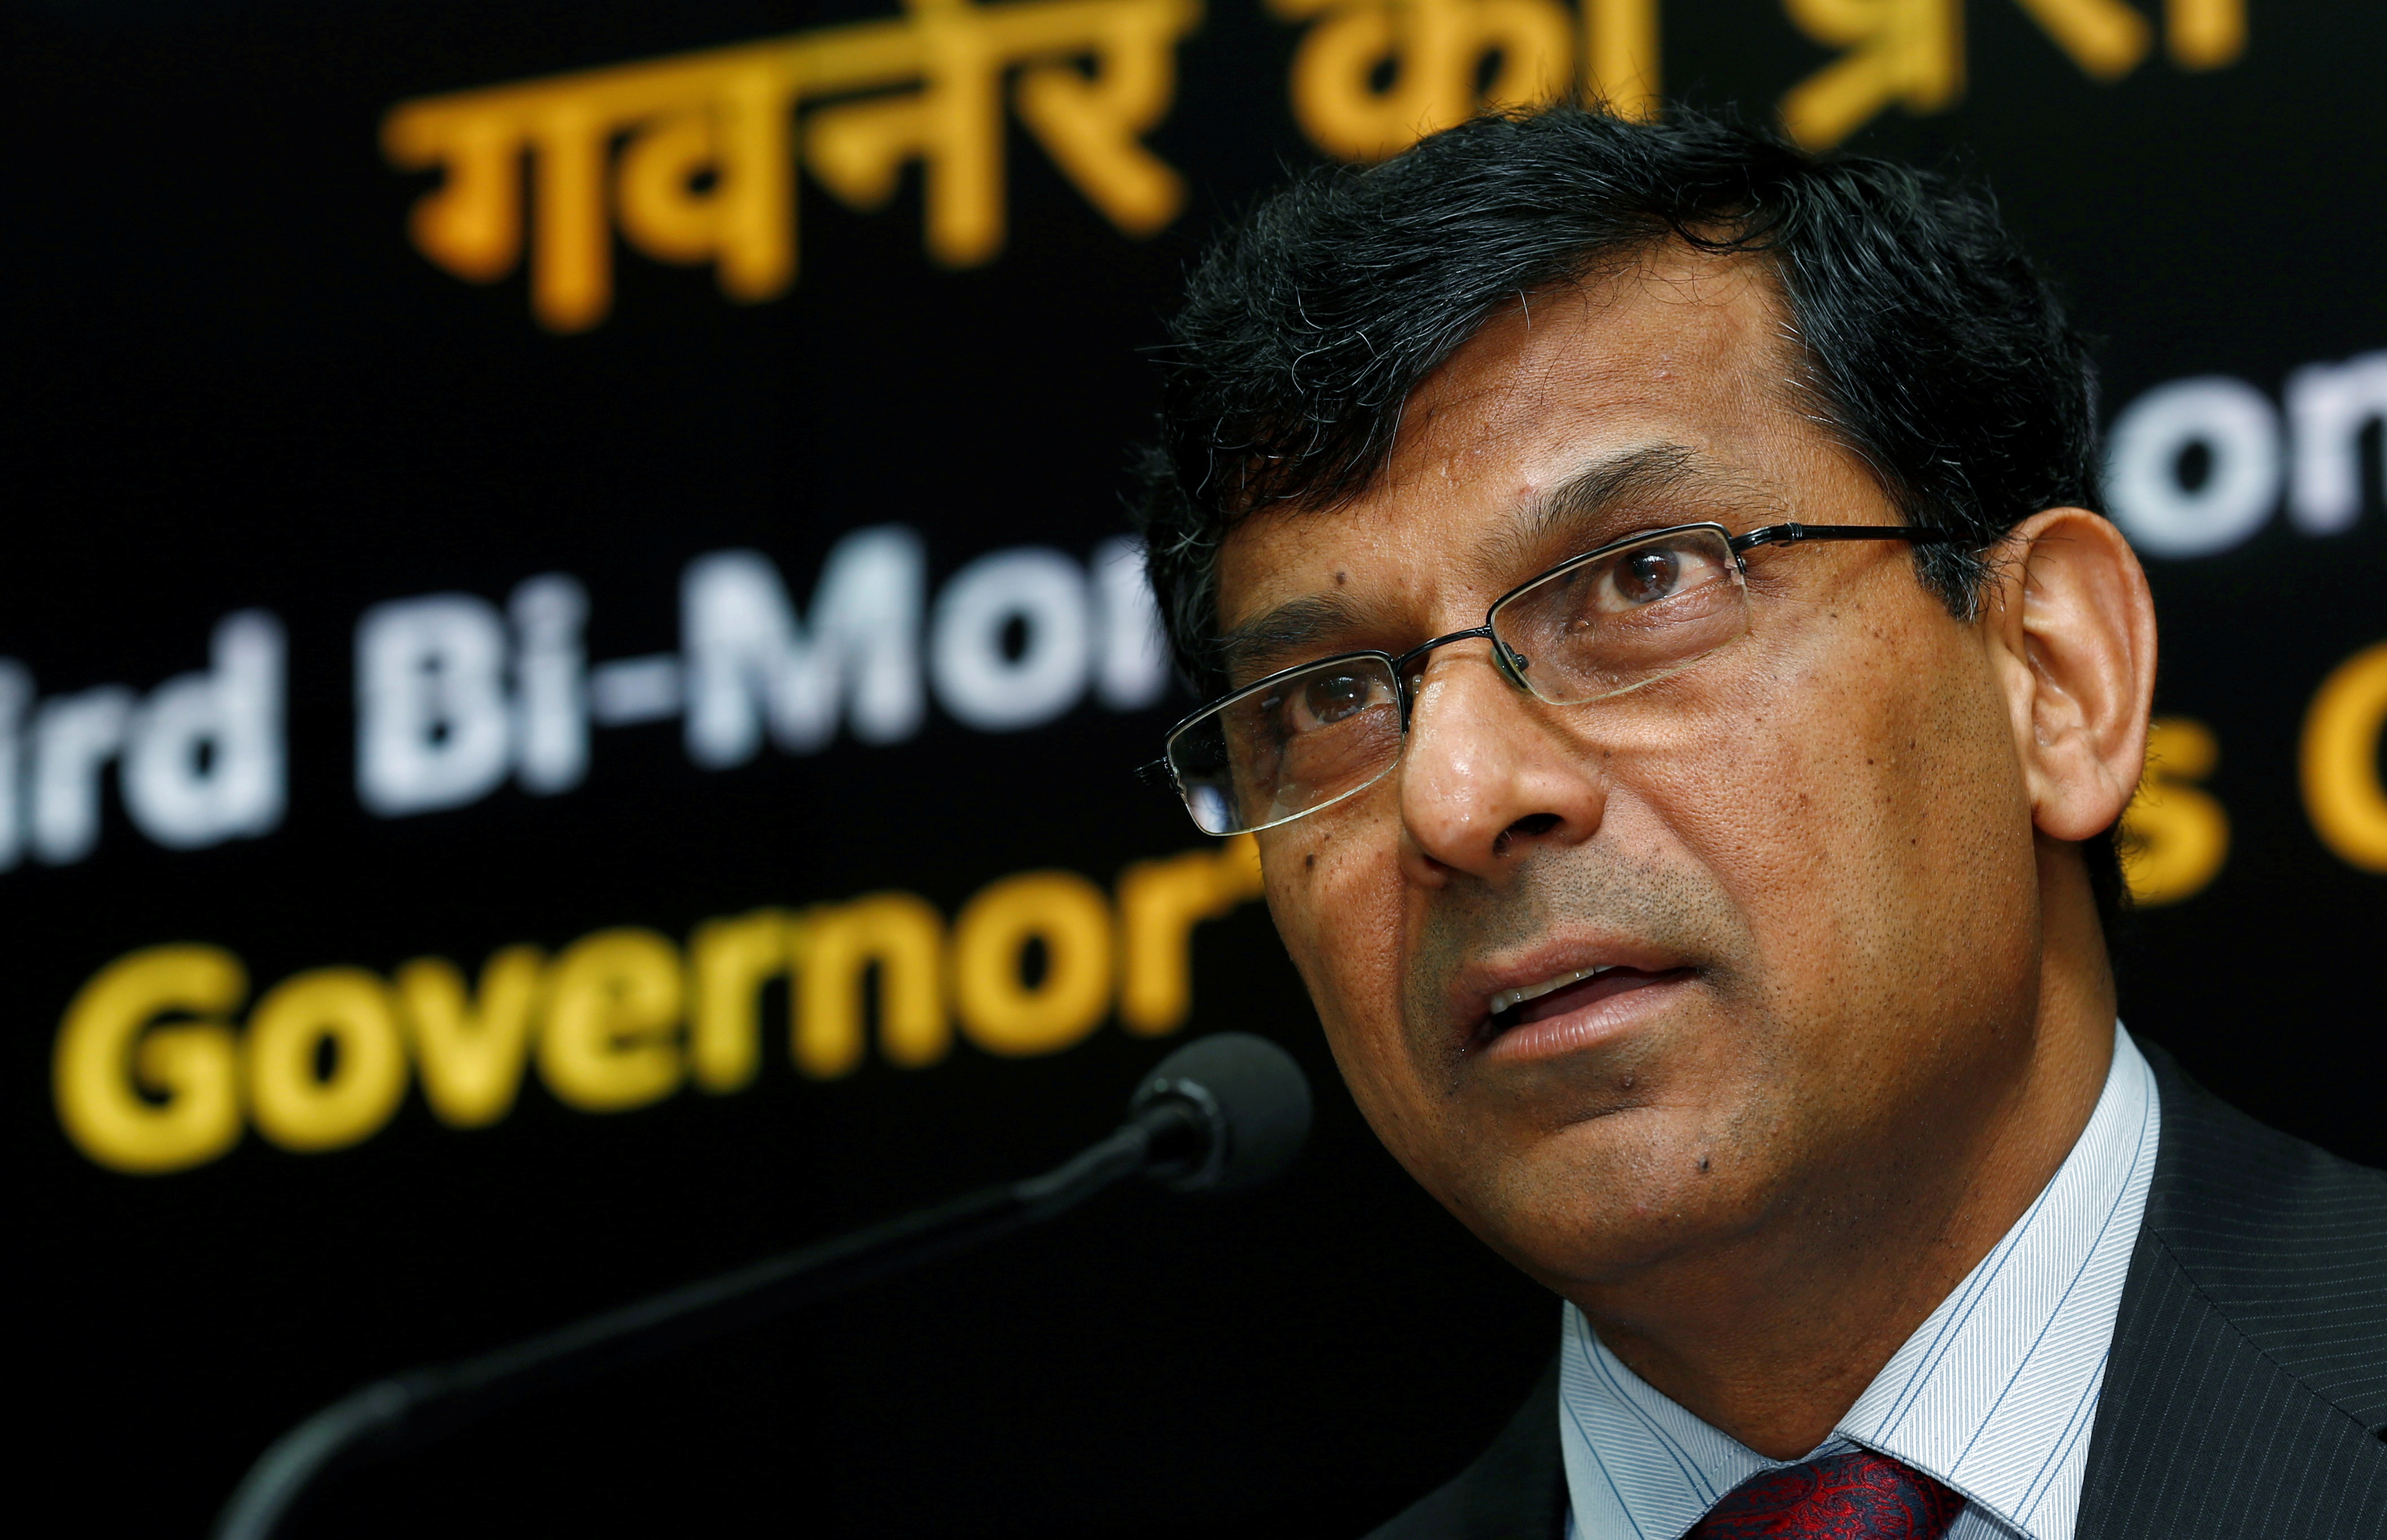 Former Reserve Bank of India (RBI) Governor Raghuram Rajan speaks during a news conference at the RBI headquarters in Mumbai, India, August 9, 2016. REUTERS/Danish Siddiqui